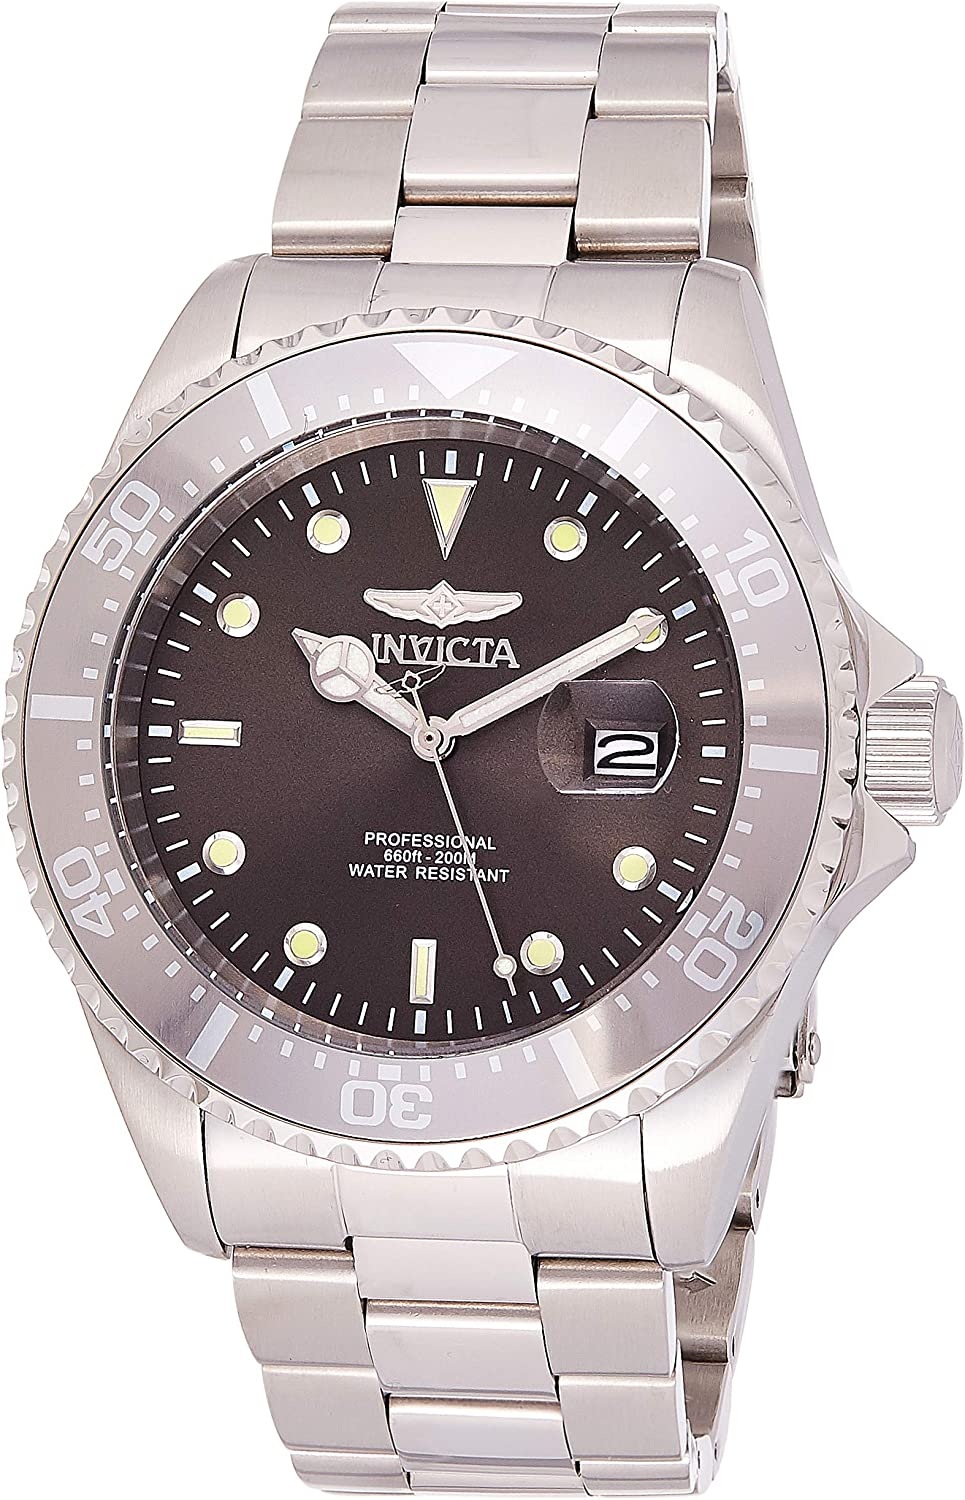 Invicta Men s Pro Diver Quartz Diving Watch with Stainless-Steel Strap, Silver, 14 Model 22050